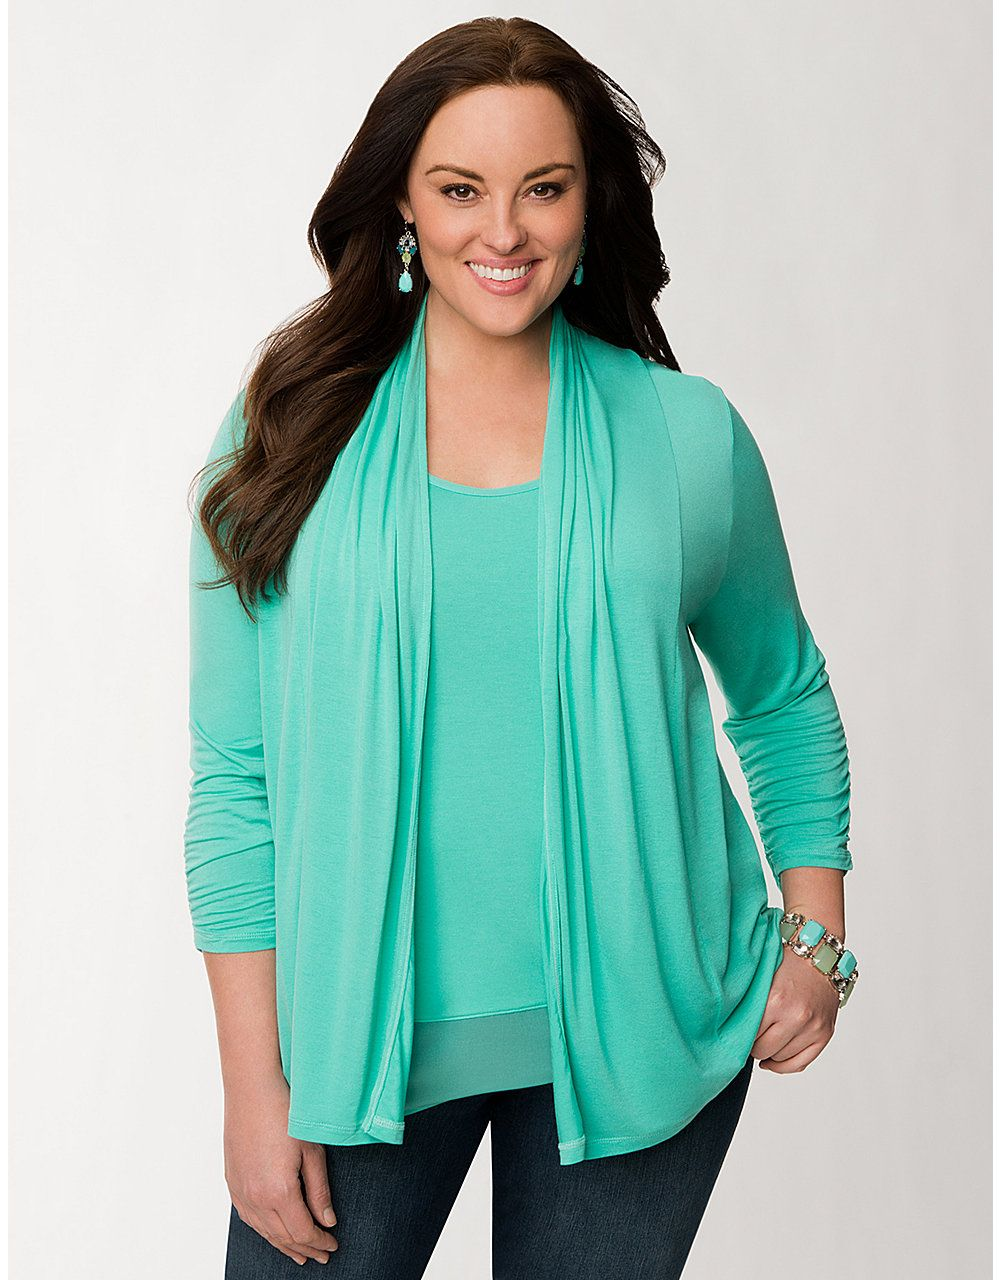 Plus Size 3/4 Sleeve Knit Cardigan by Lane Bryant | Lane Bryant ...